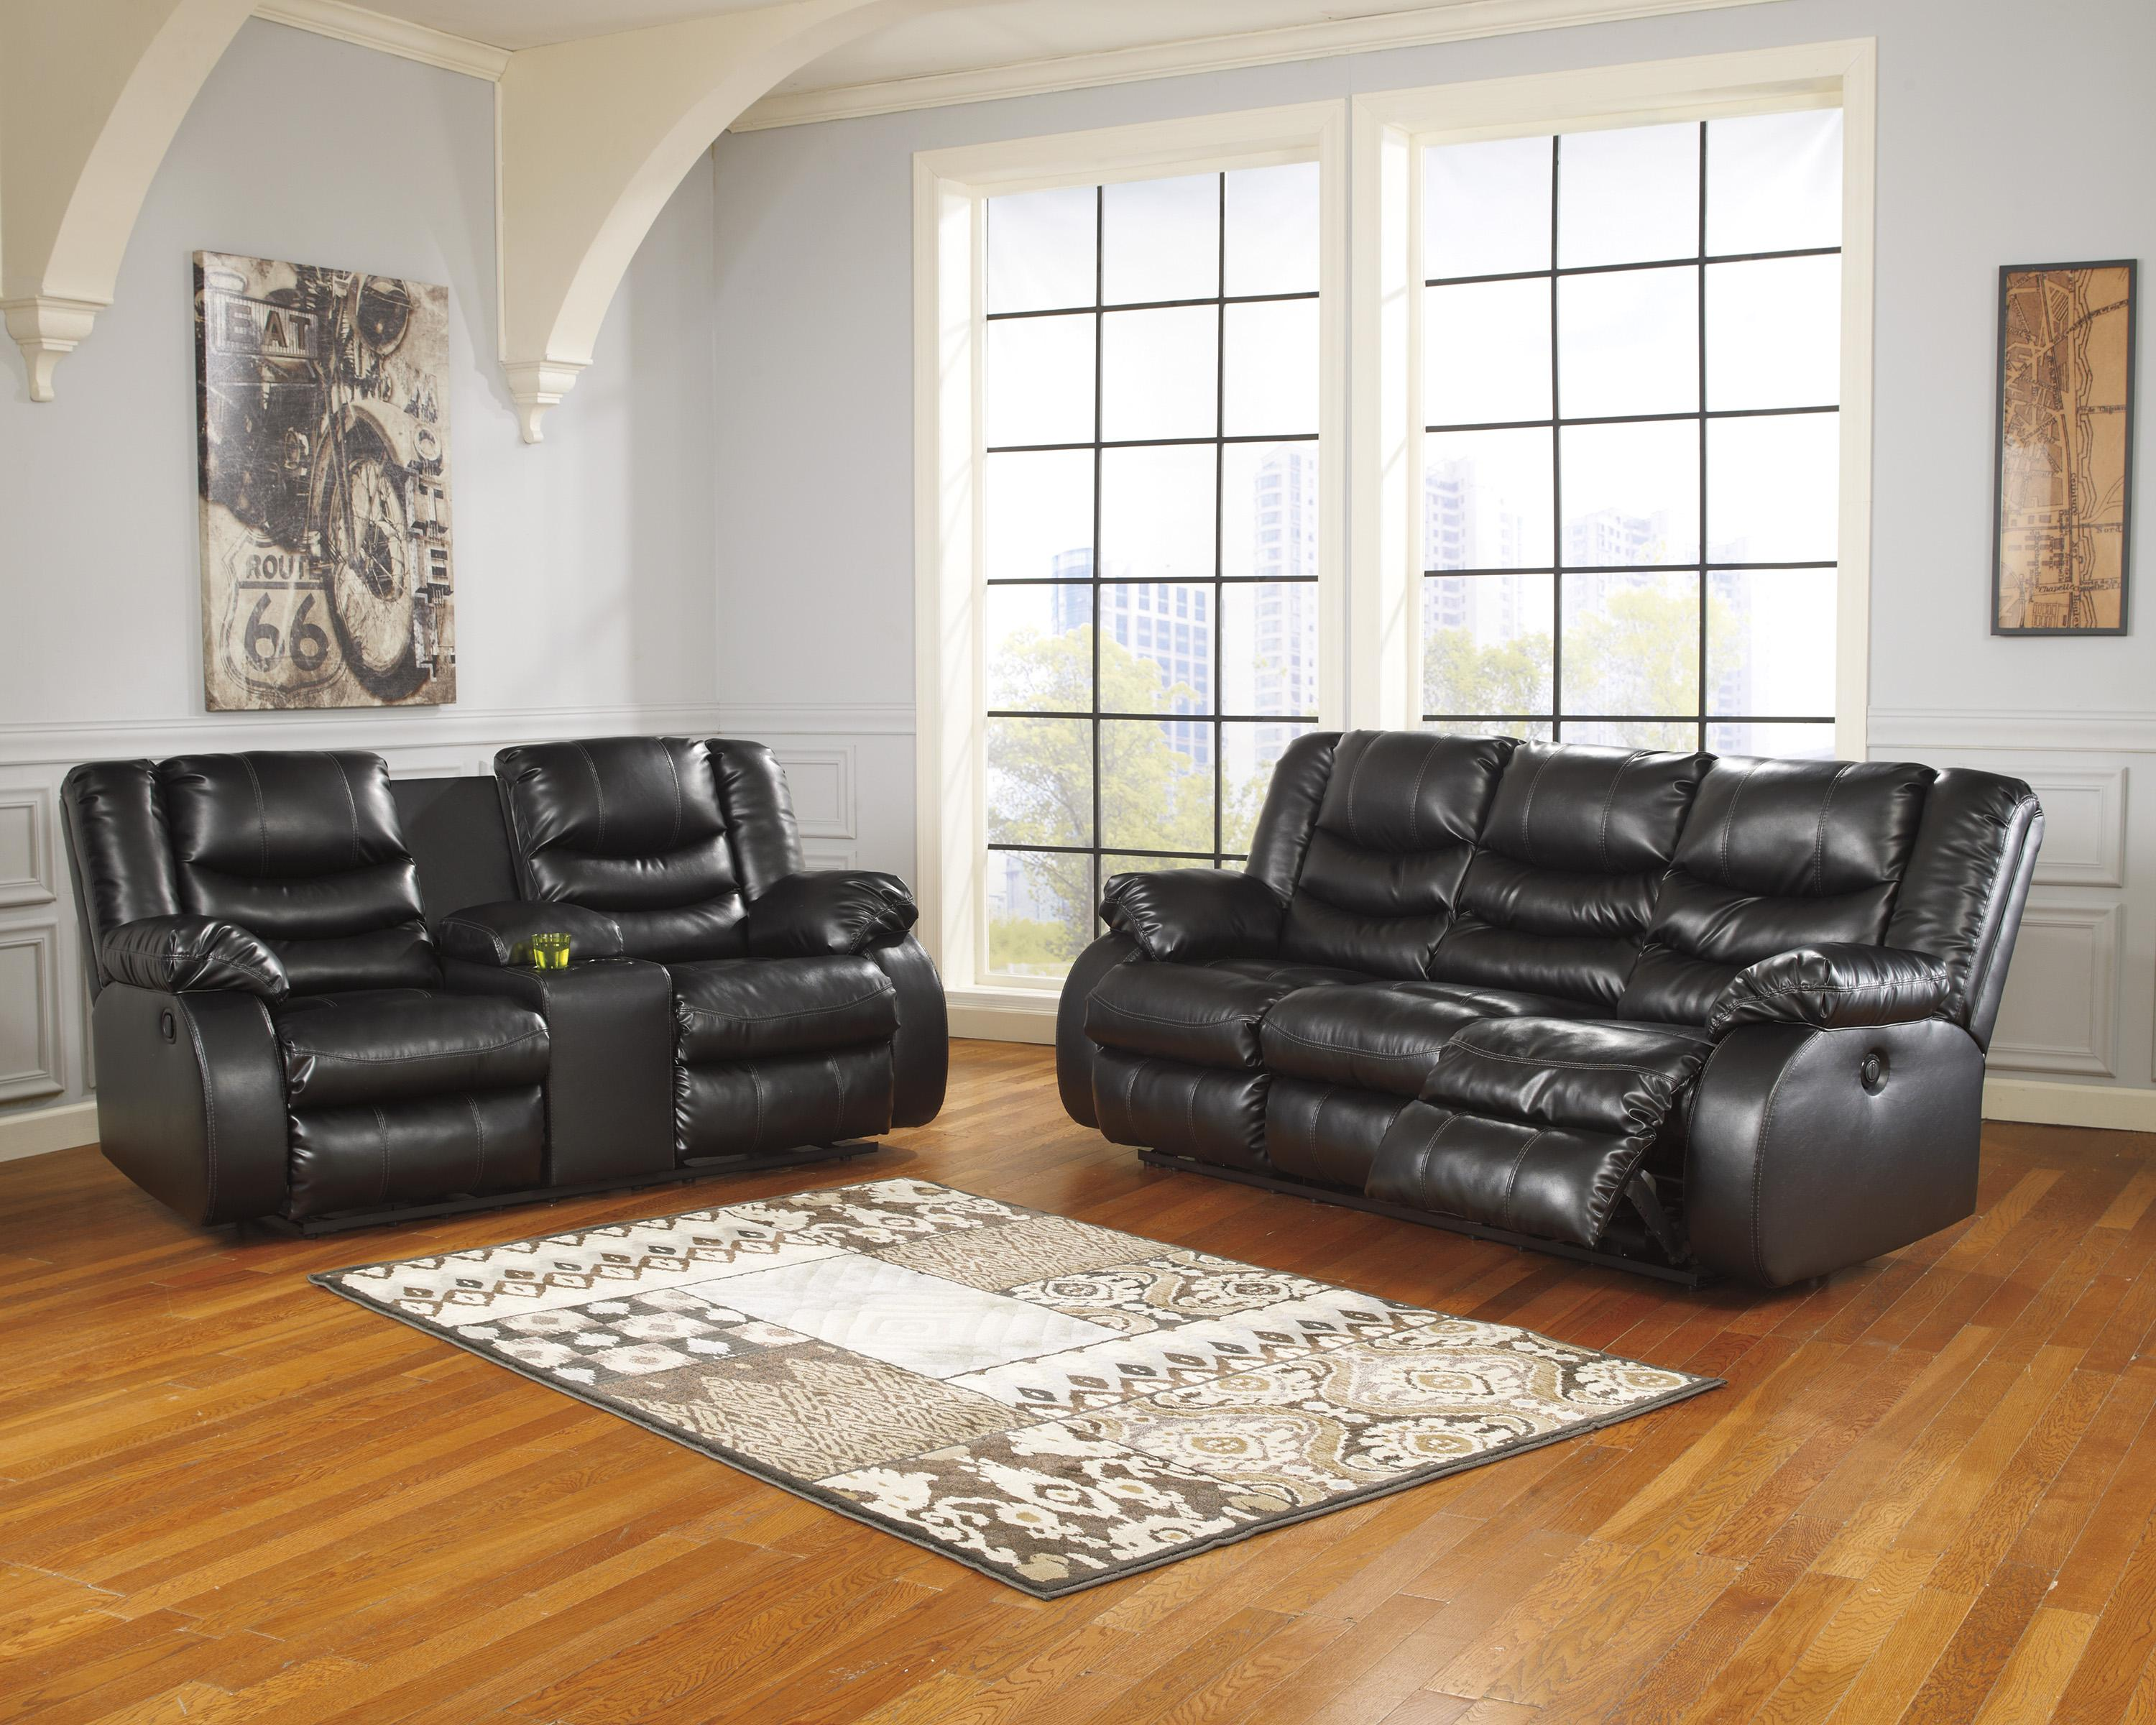 Ashley/Benchcraft Linebacker DuraBlend - Black Reclining Living Room Group - Item Number: 95202 Living Room Group 1